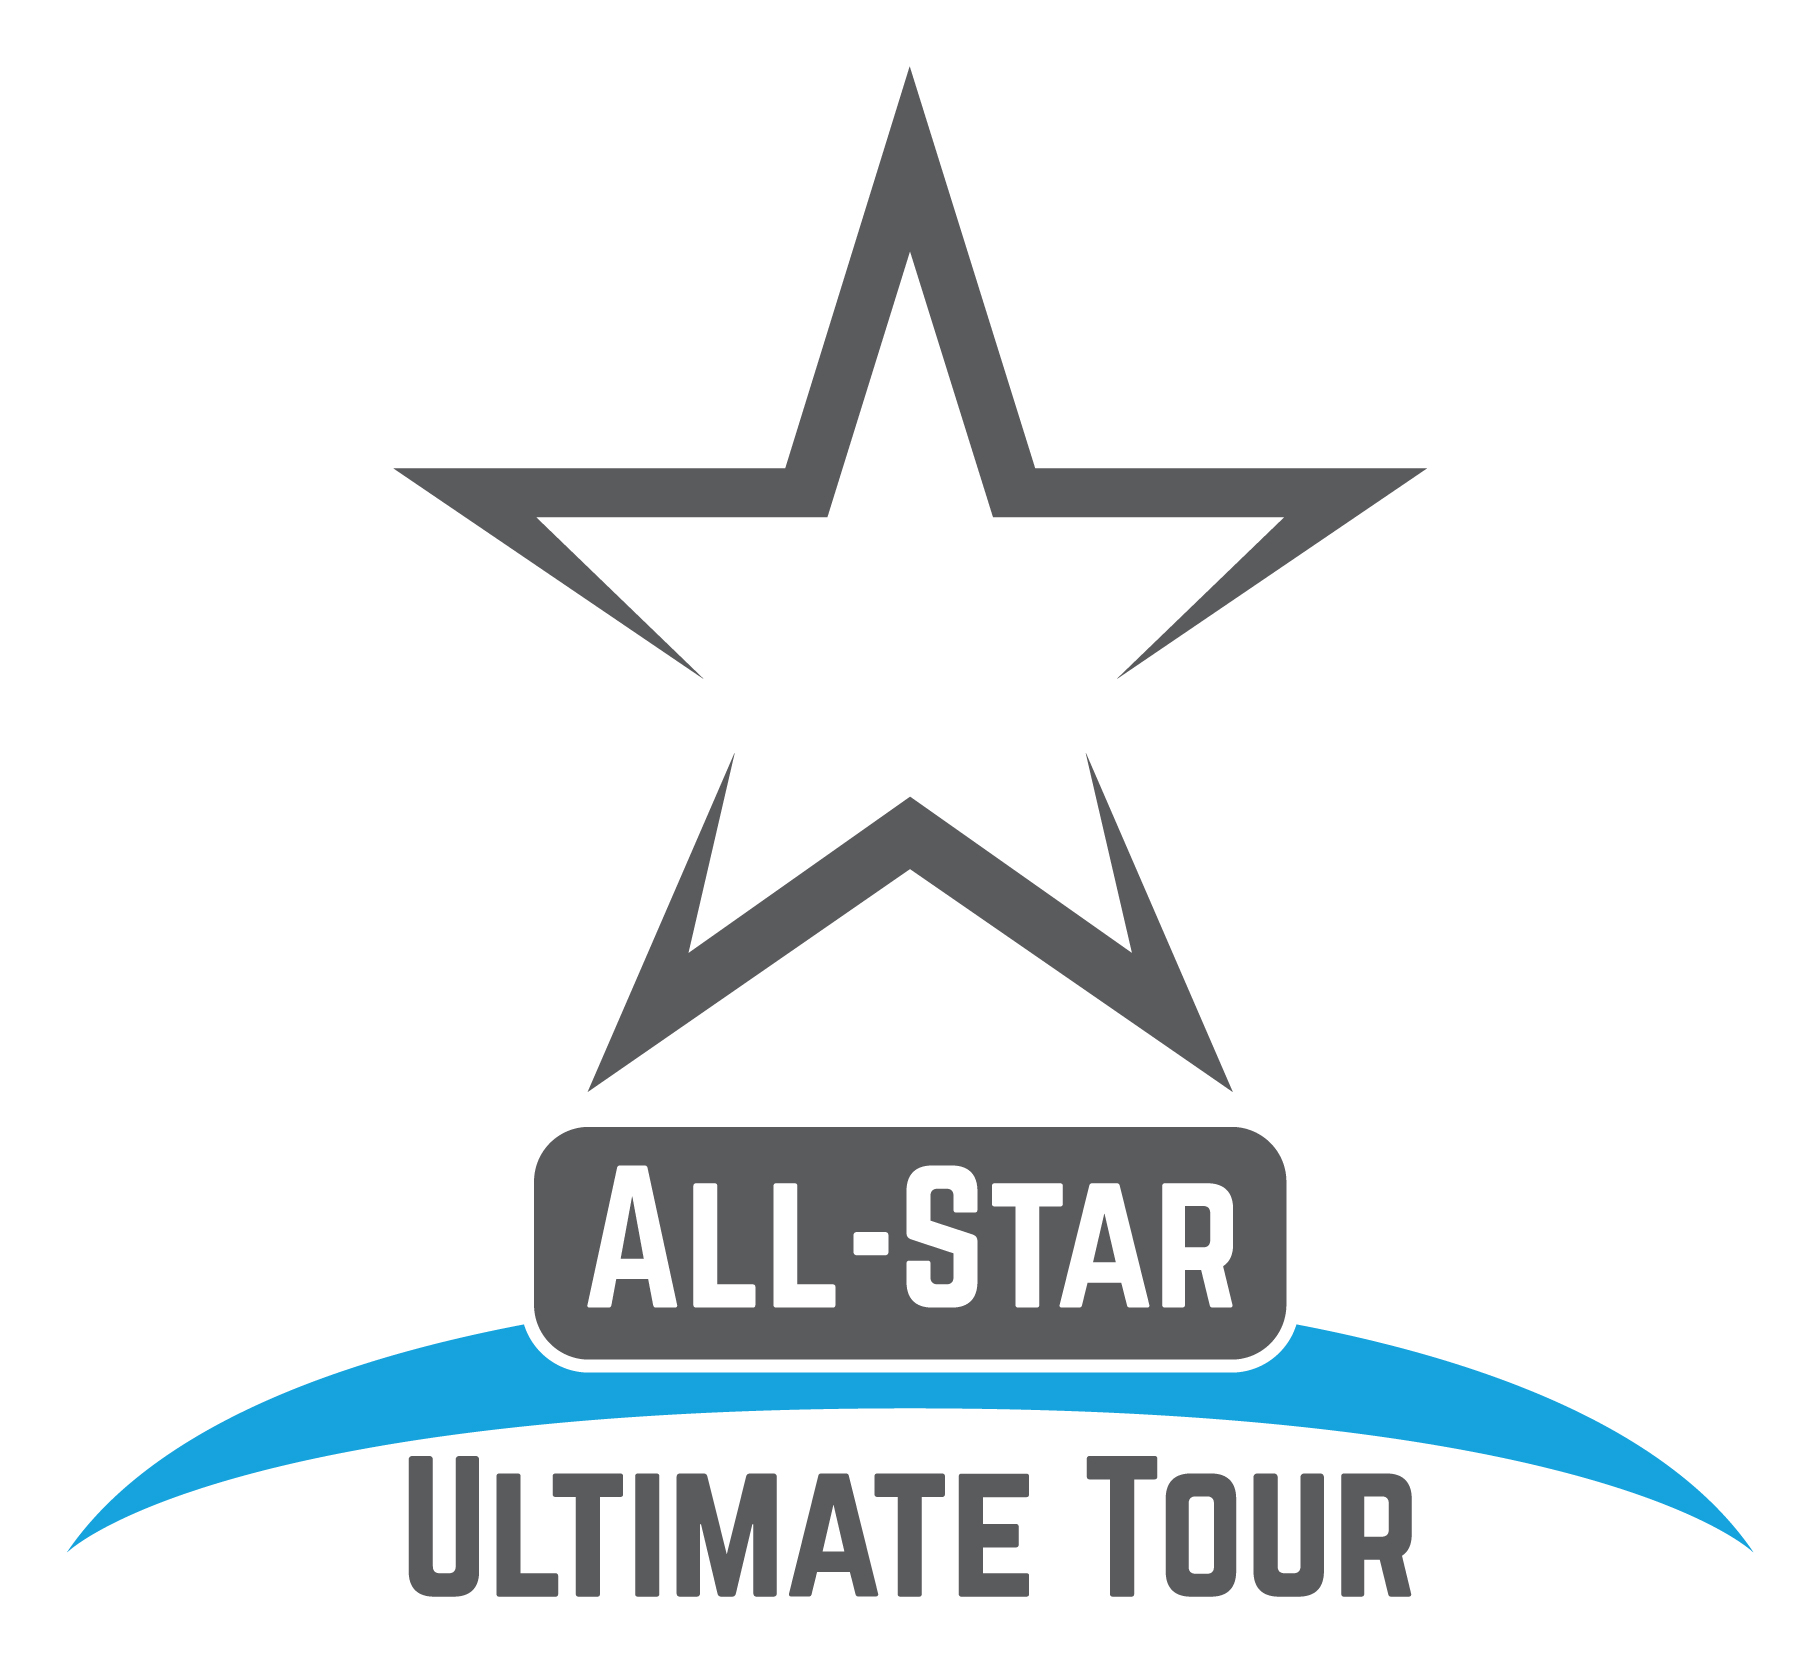 all star ultimate tour